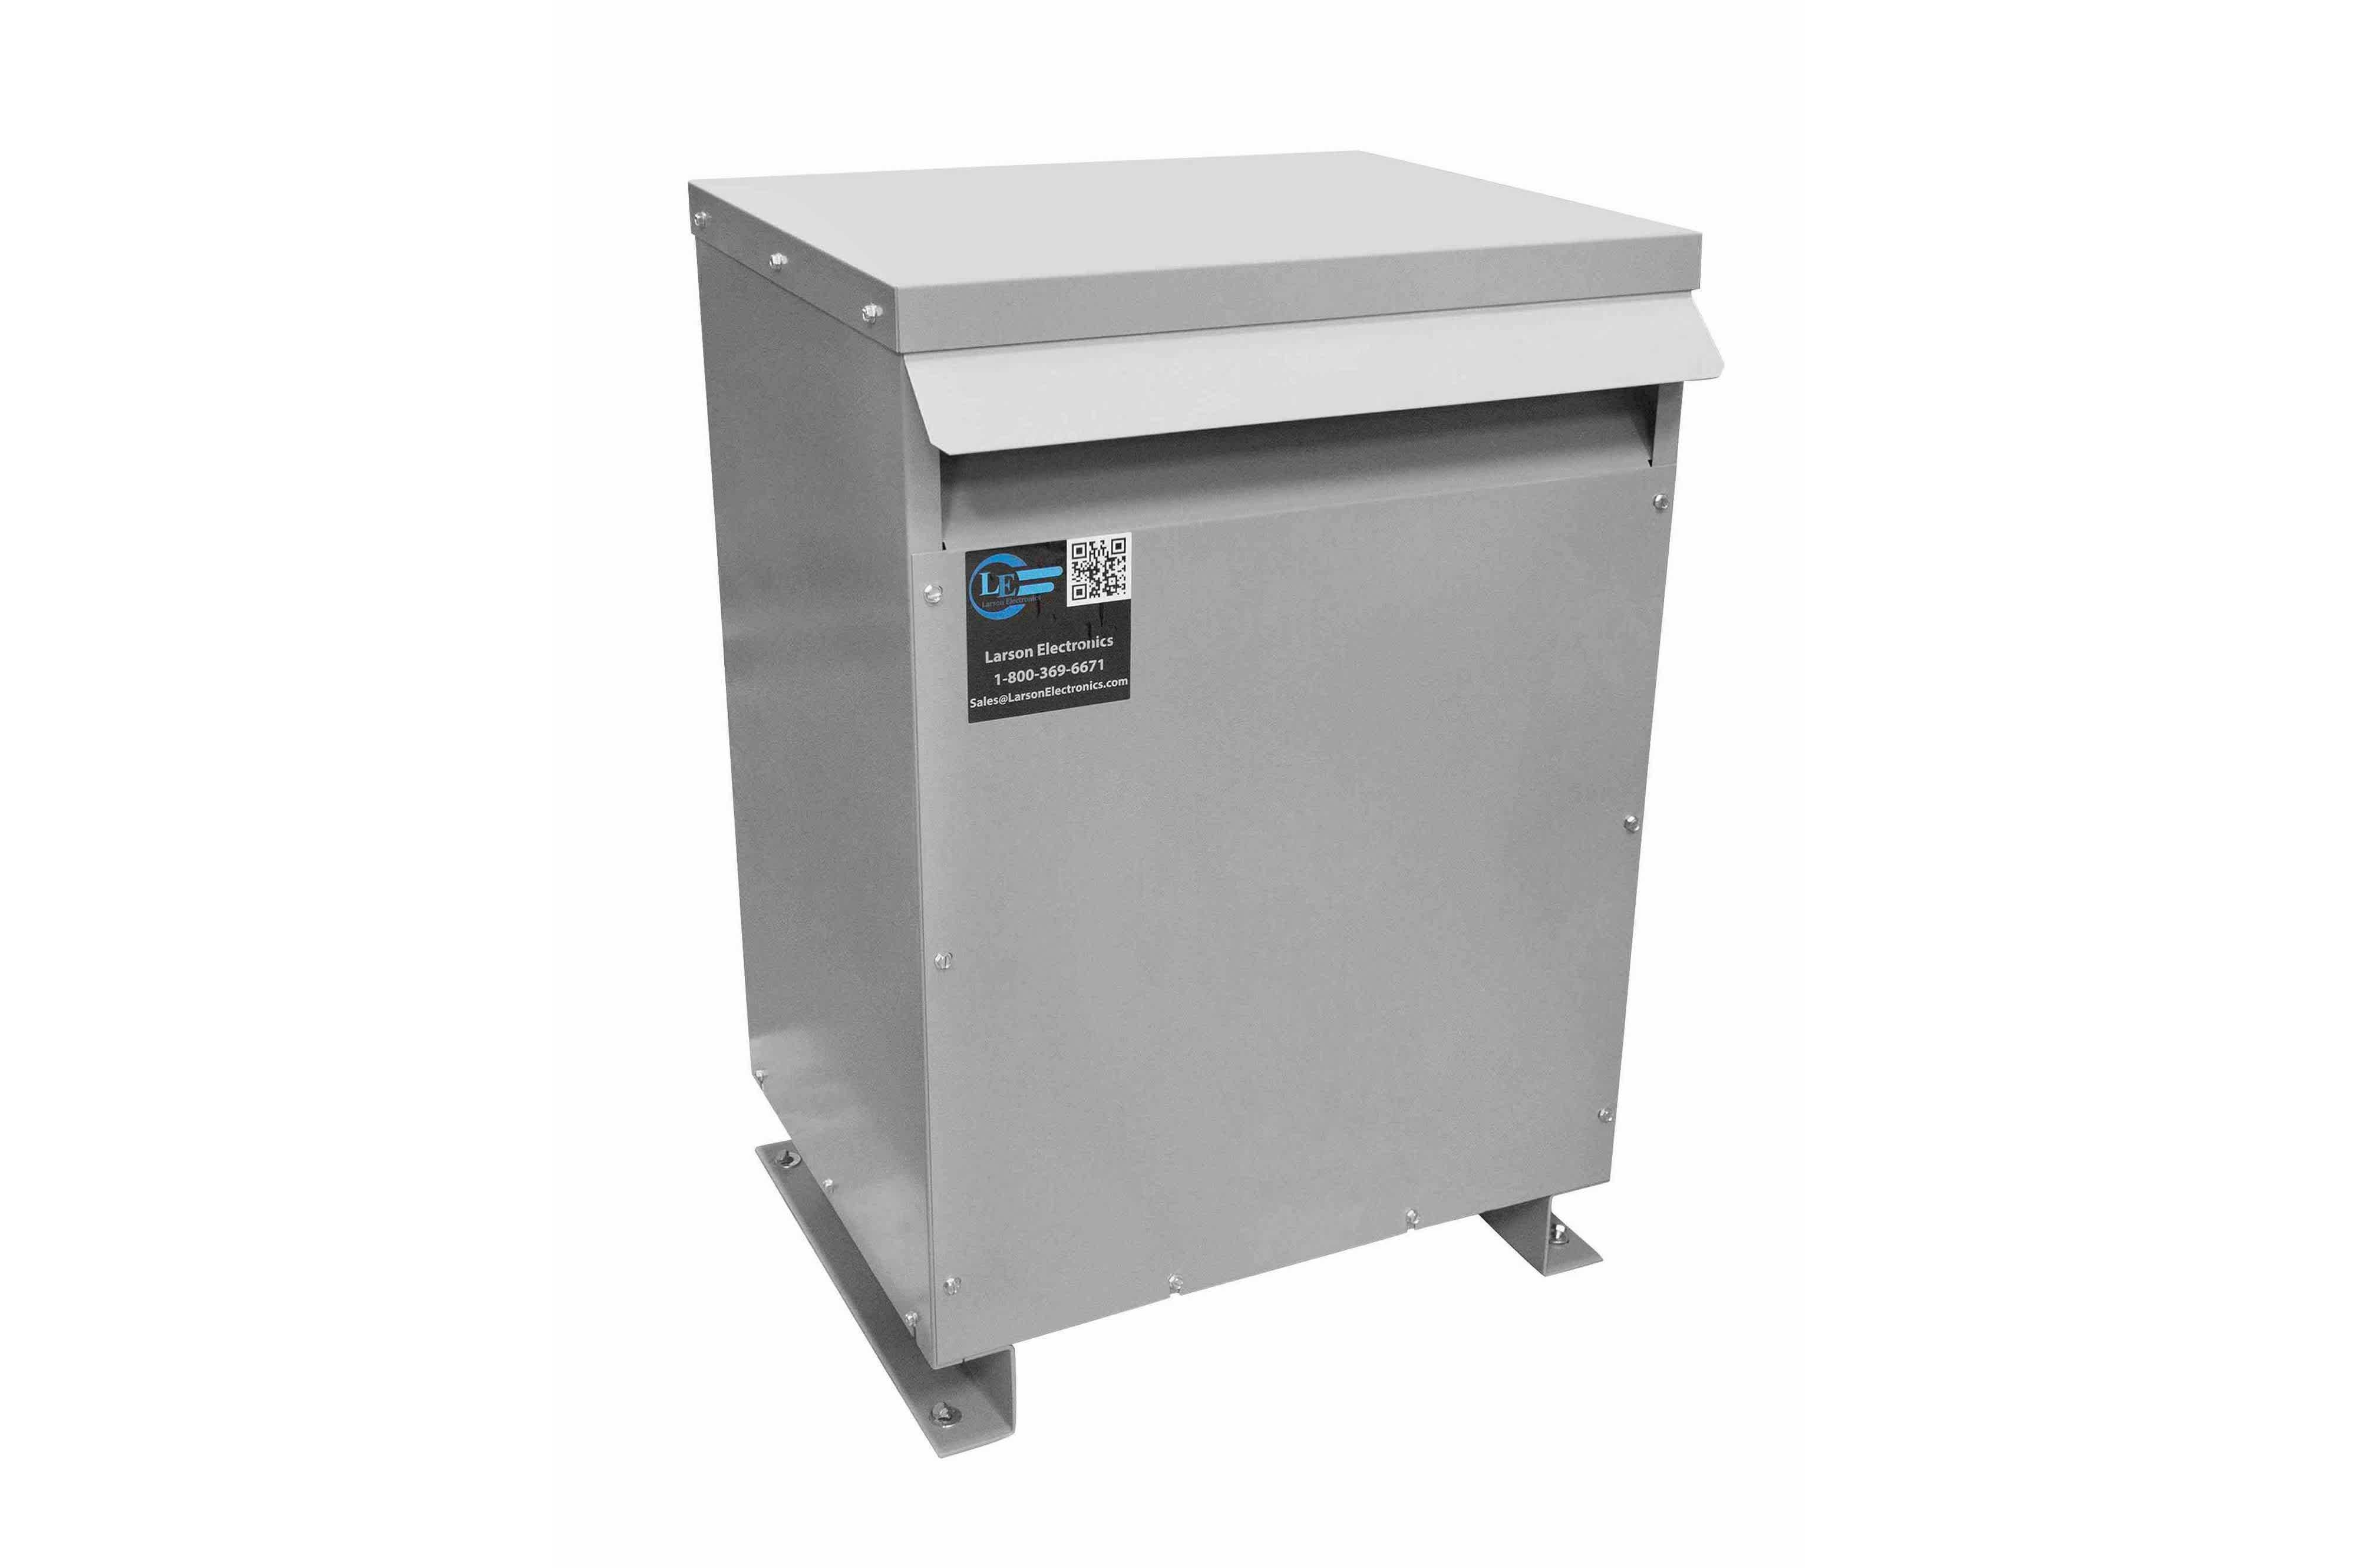 200 kVA 3PH Isolation Transformer, 400V Wye Primary, 600V Delta Secondary, N3R, Ventilated, 60 Hz